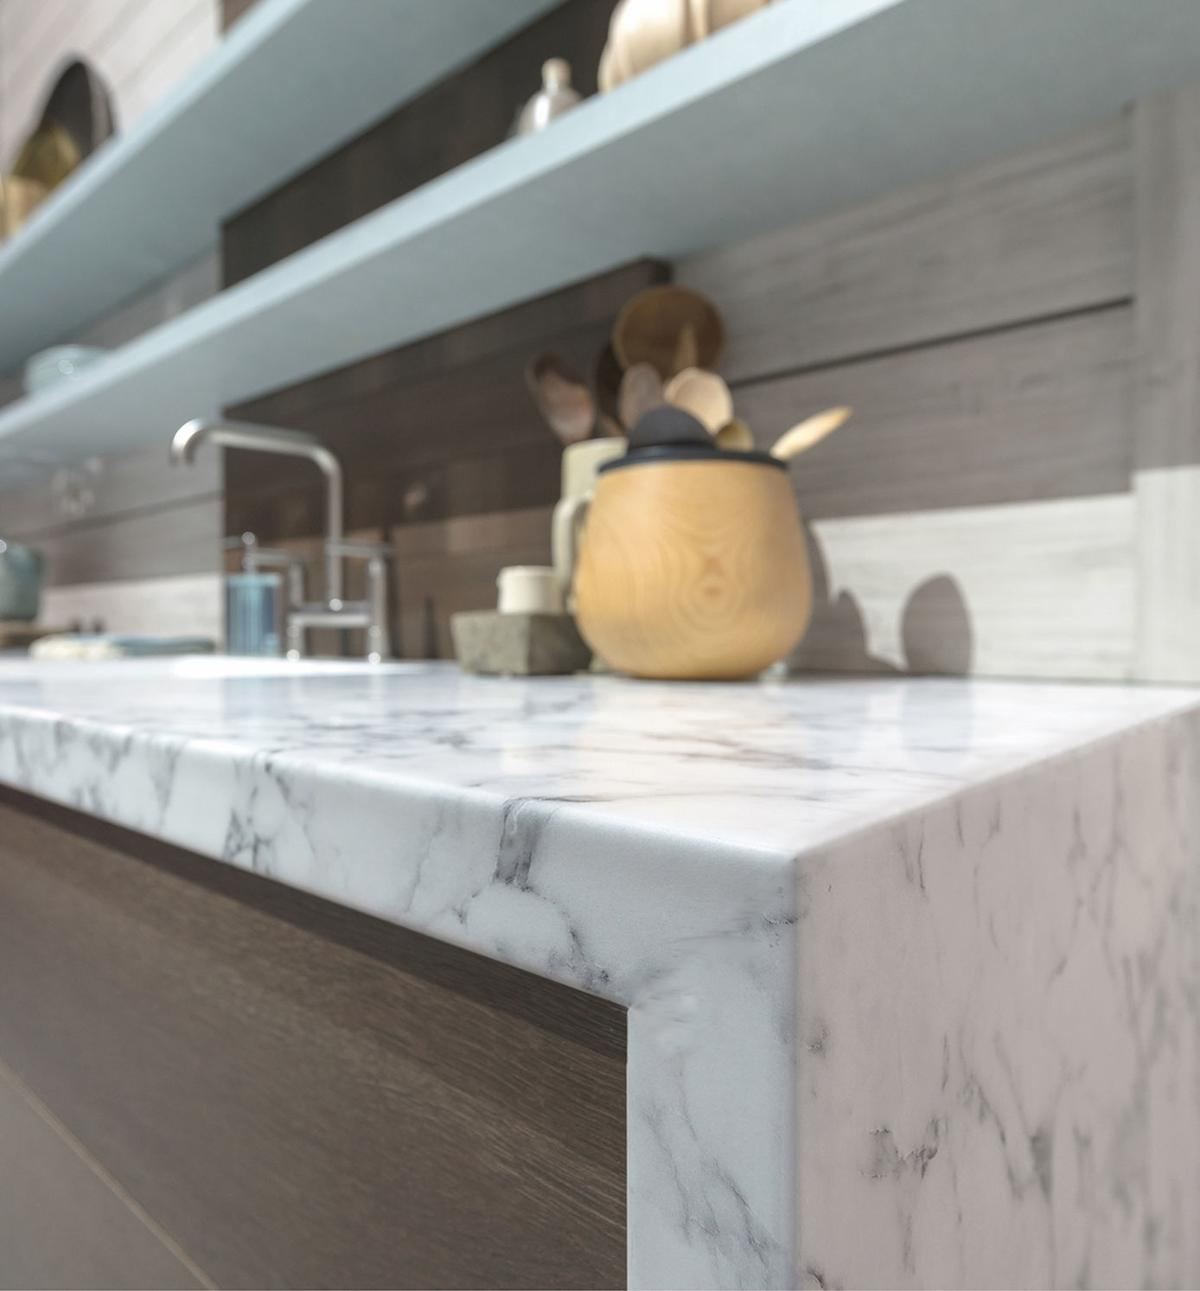 Laminate counters take on a new look